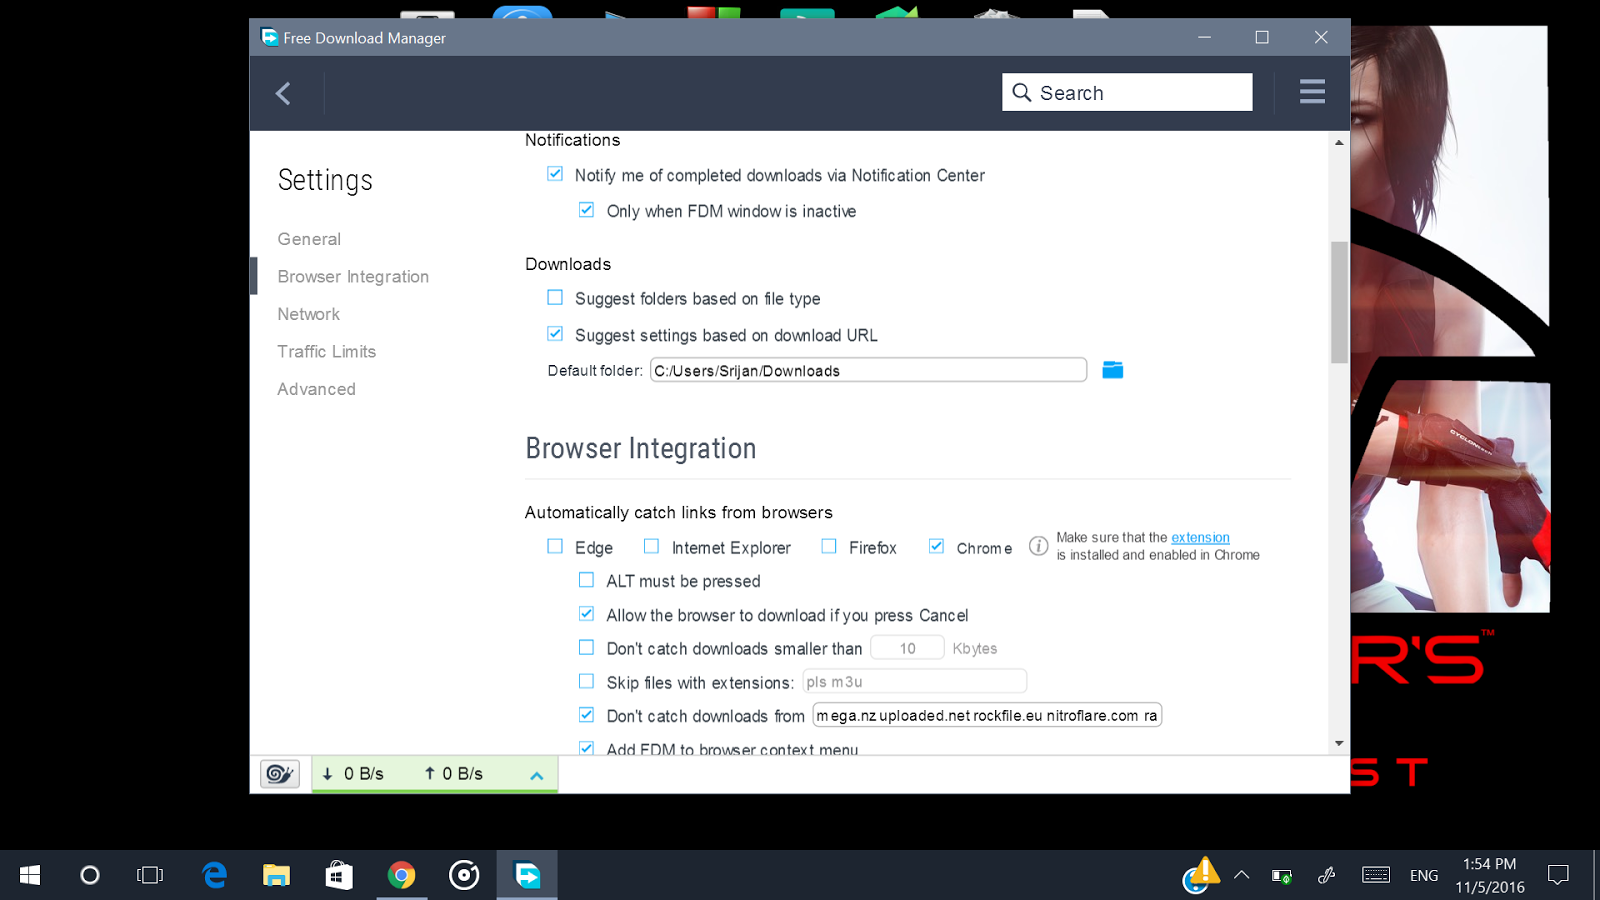 free download manager extension for edge